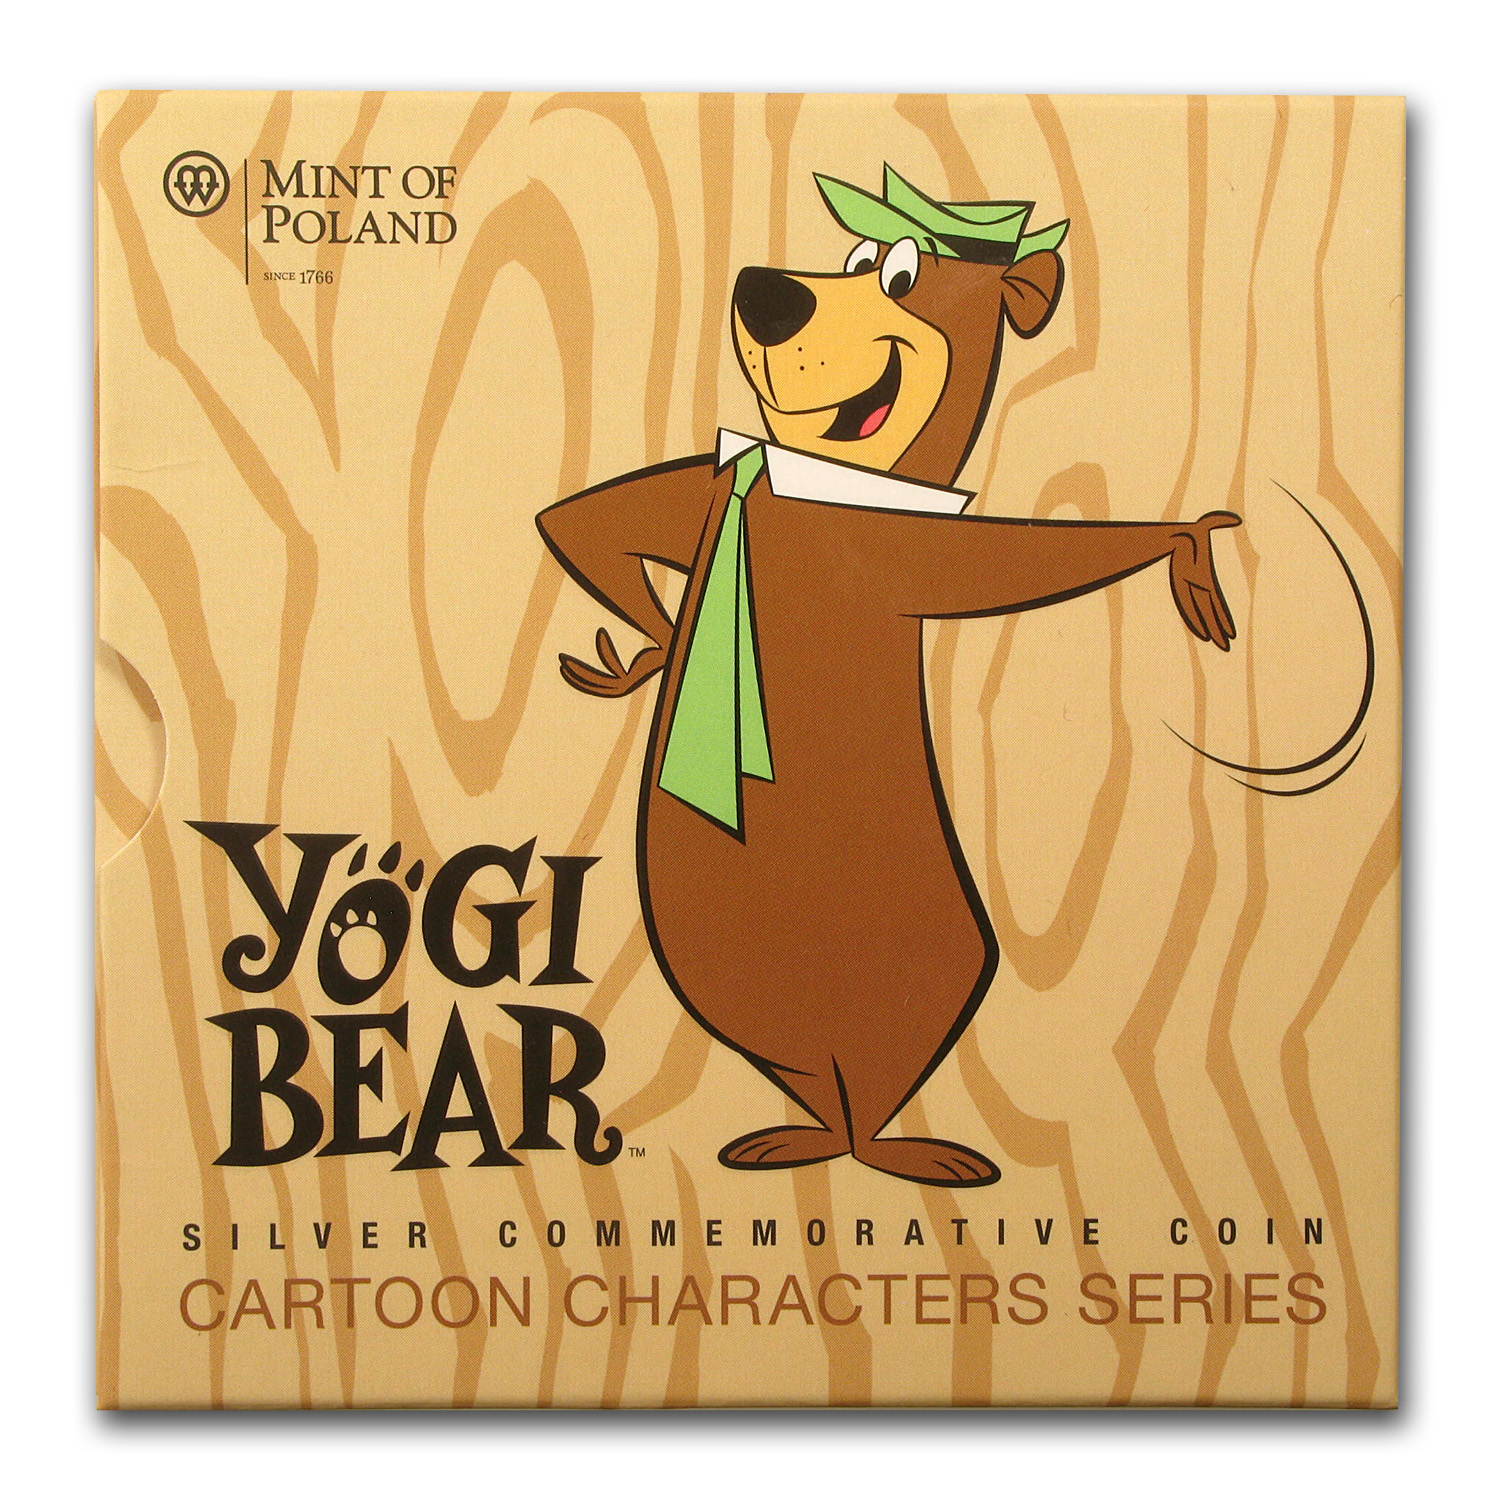 Niue 2014 Proof Silver $1 Cartoon Characters - Yogi Bear